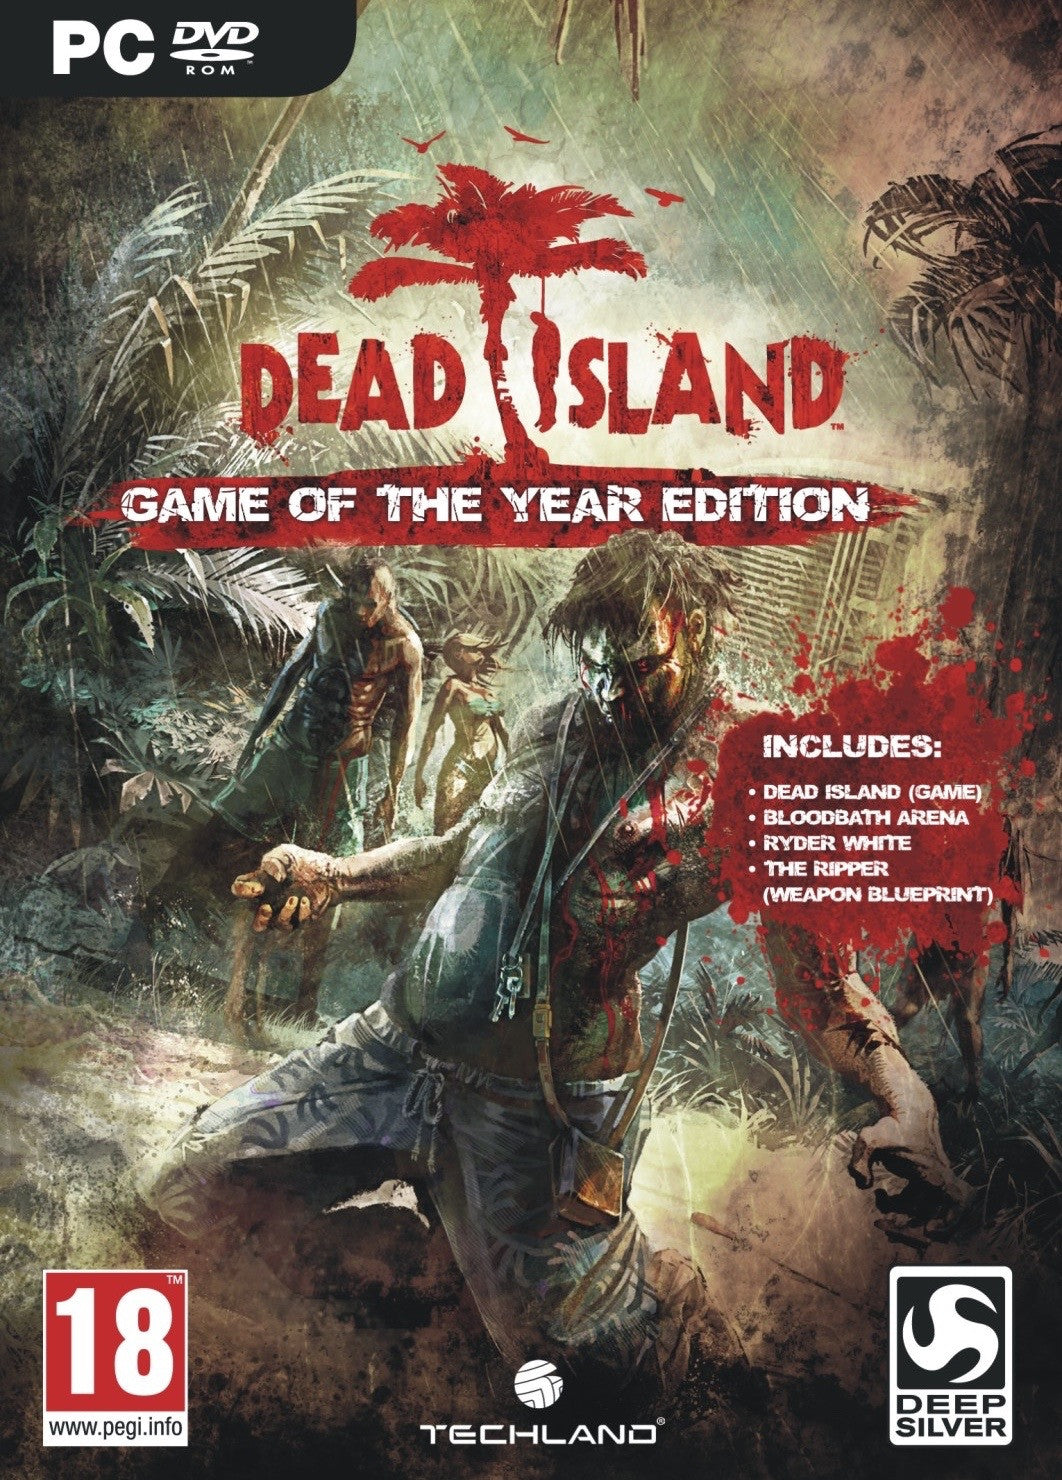 Dead island cheats and trainers vgfaq.